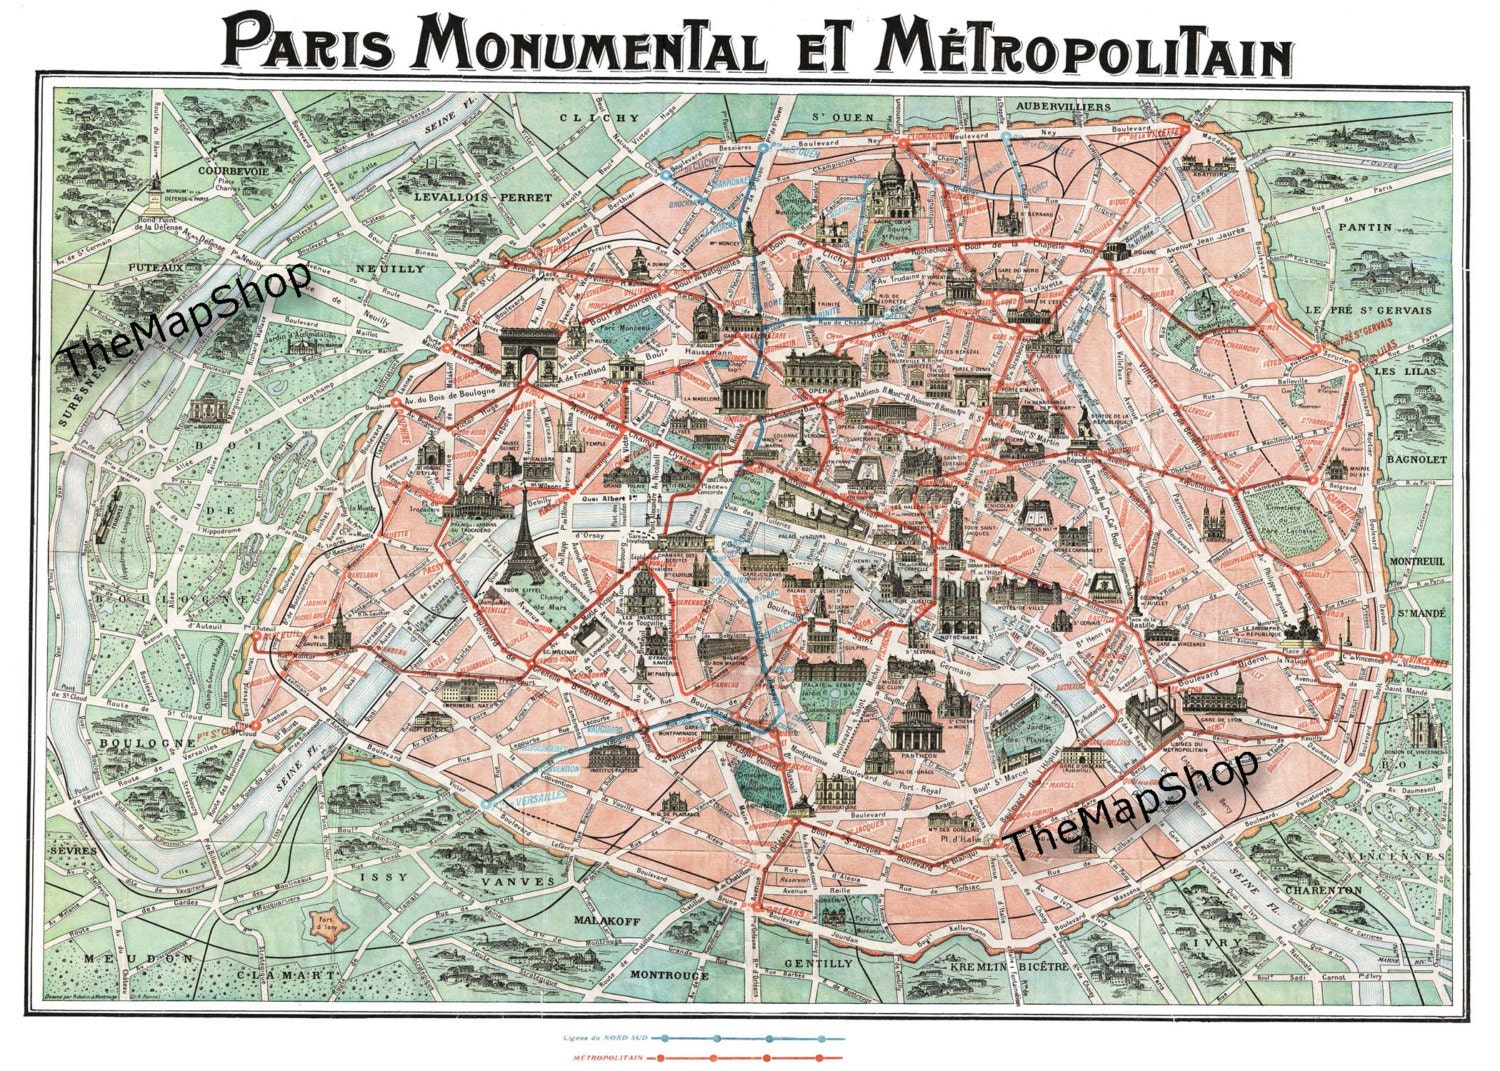 Old paris street map royalty free stock photo image 15885665 - Paris Street Plan Paris Street Map Vintage Map Paris By Themapshop On Etsy